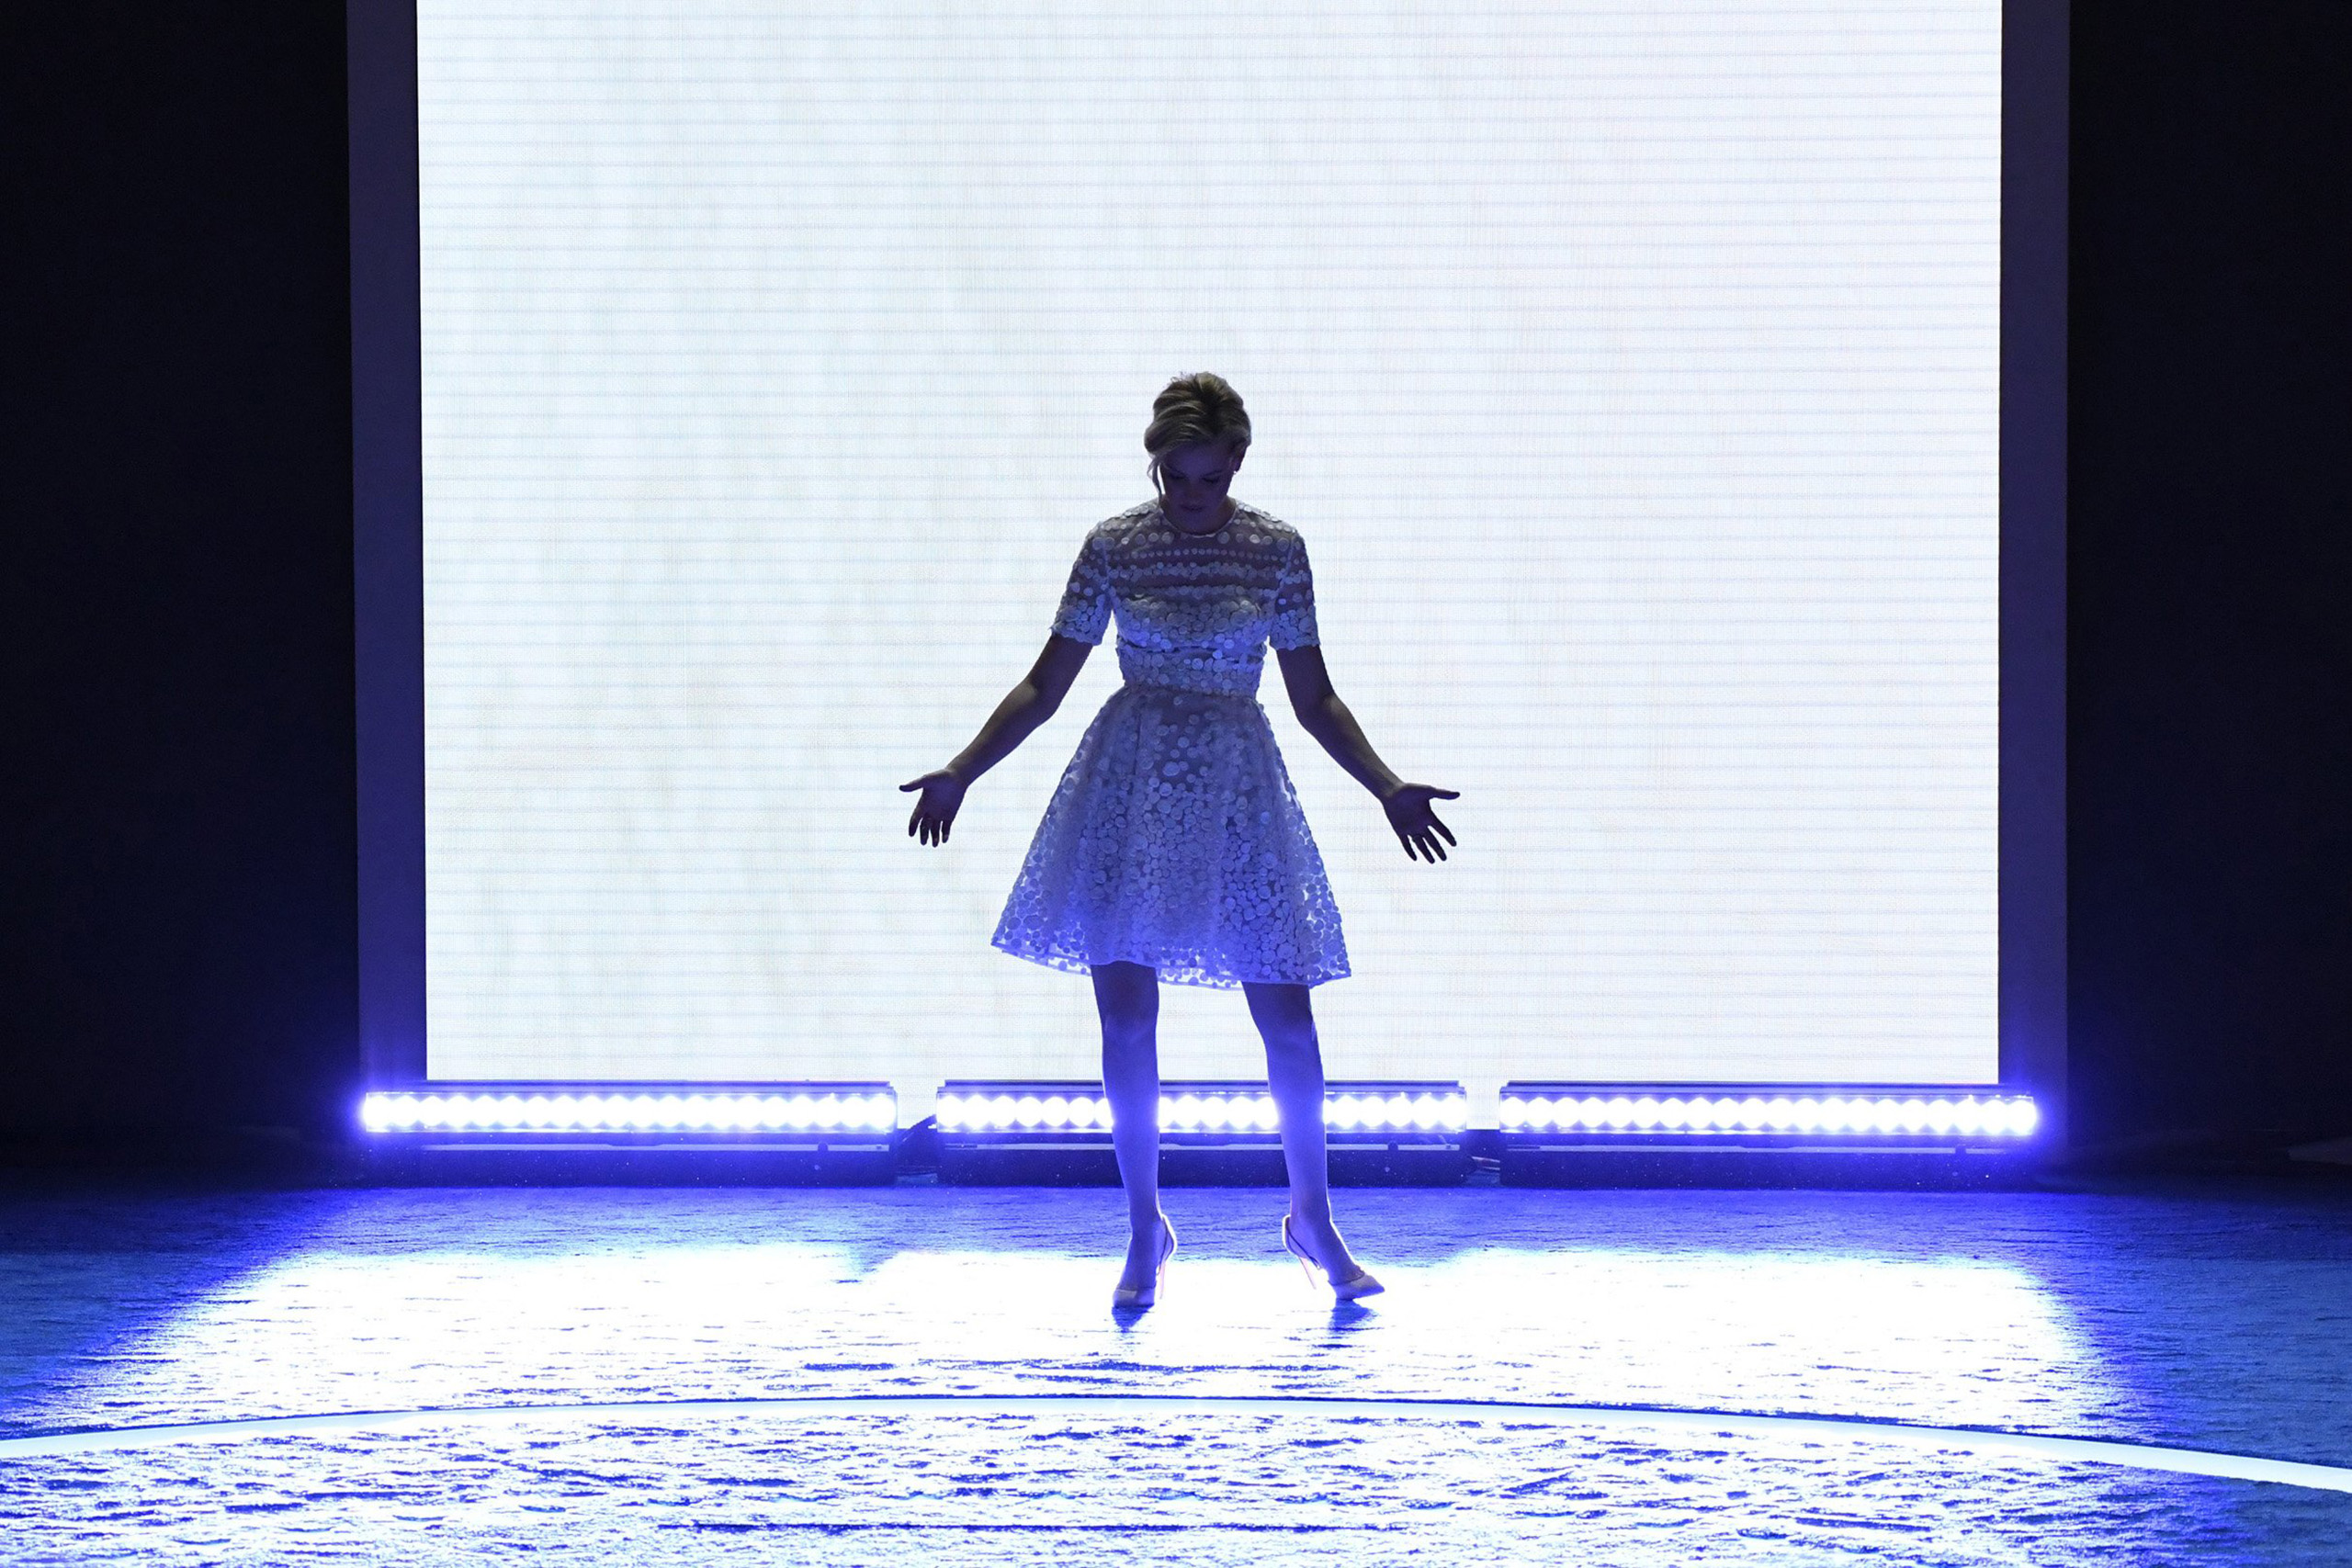 Actress Elizabeth Banks stand on stage during the 2016 Democratic National Convention at Wells Fargo Arena in Philadelphia on July 26, 2016.